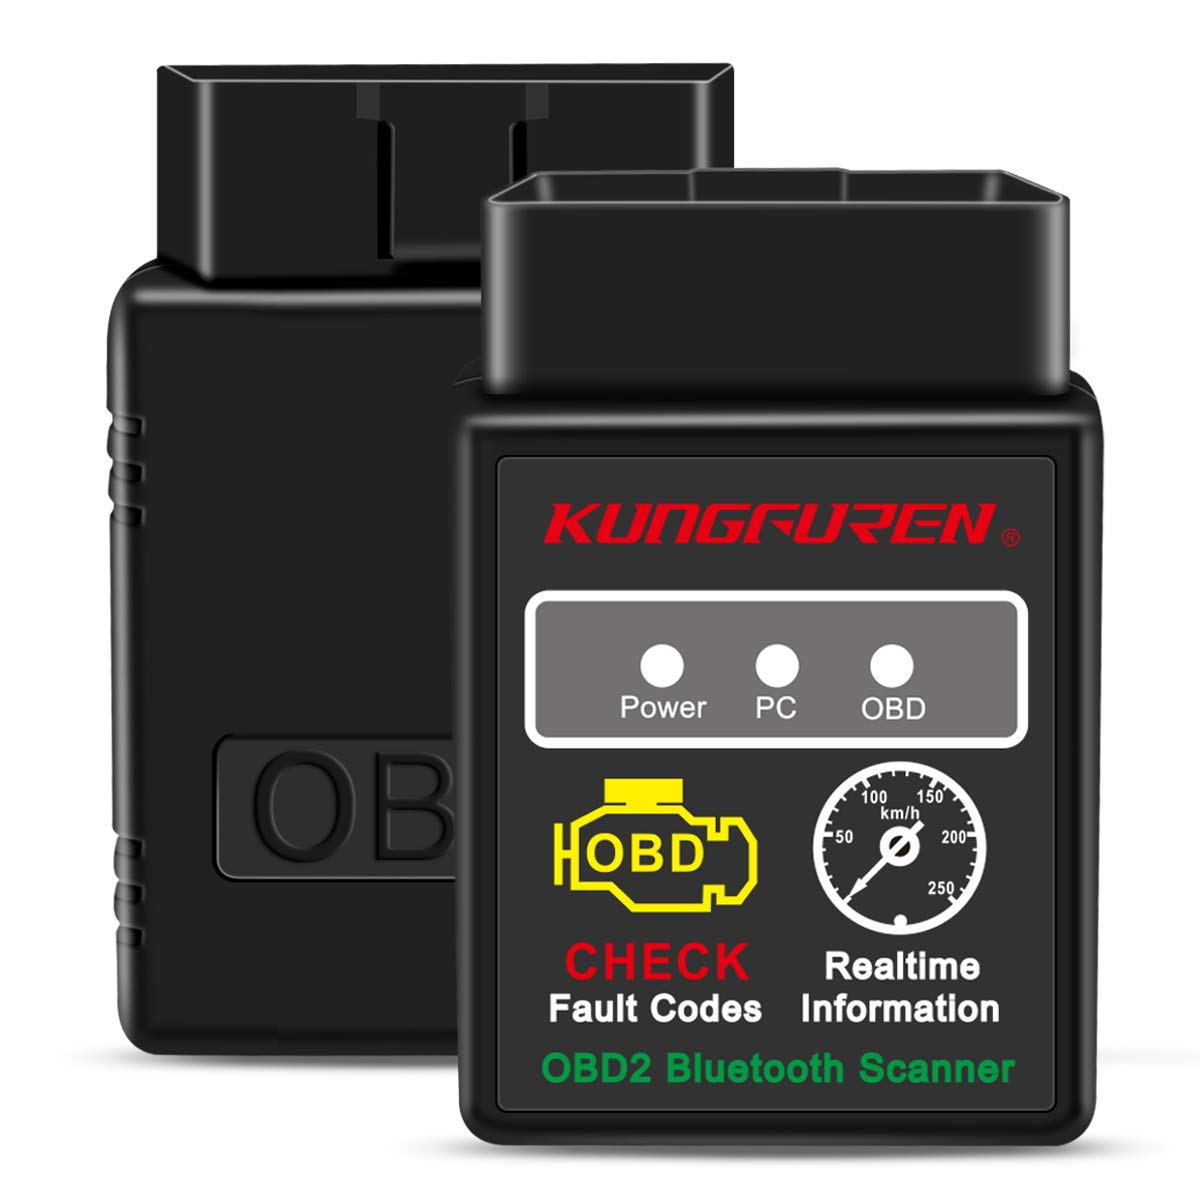 kungfuren OBD2 Bluetooth Scanner, OBD 2 Reader Car OBD Diagnostic Scanner Fault Code OBD ii OBD-ii Reader Tool Compatible with Android & Windows Devices Weipao EU Direct